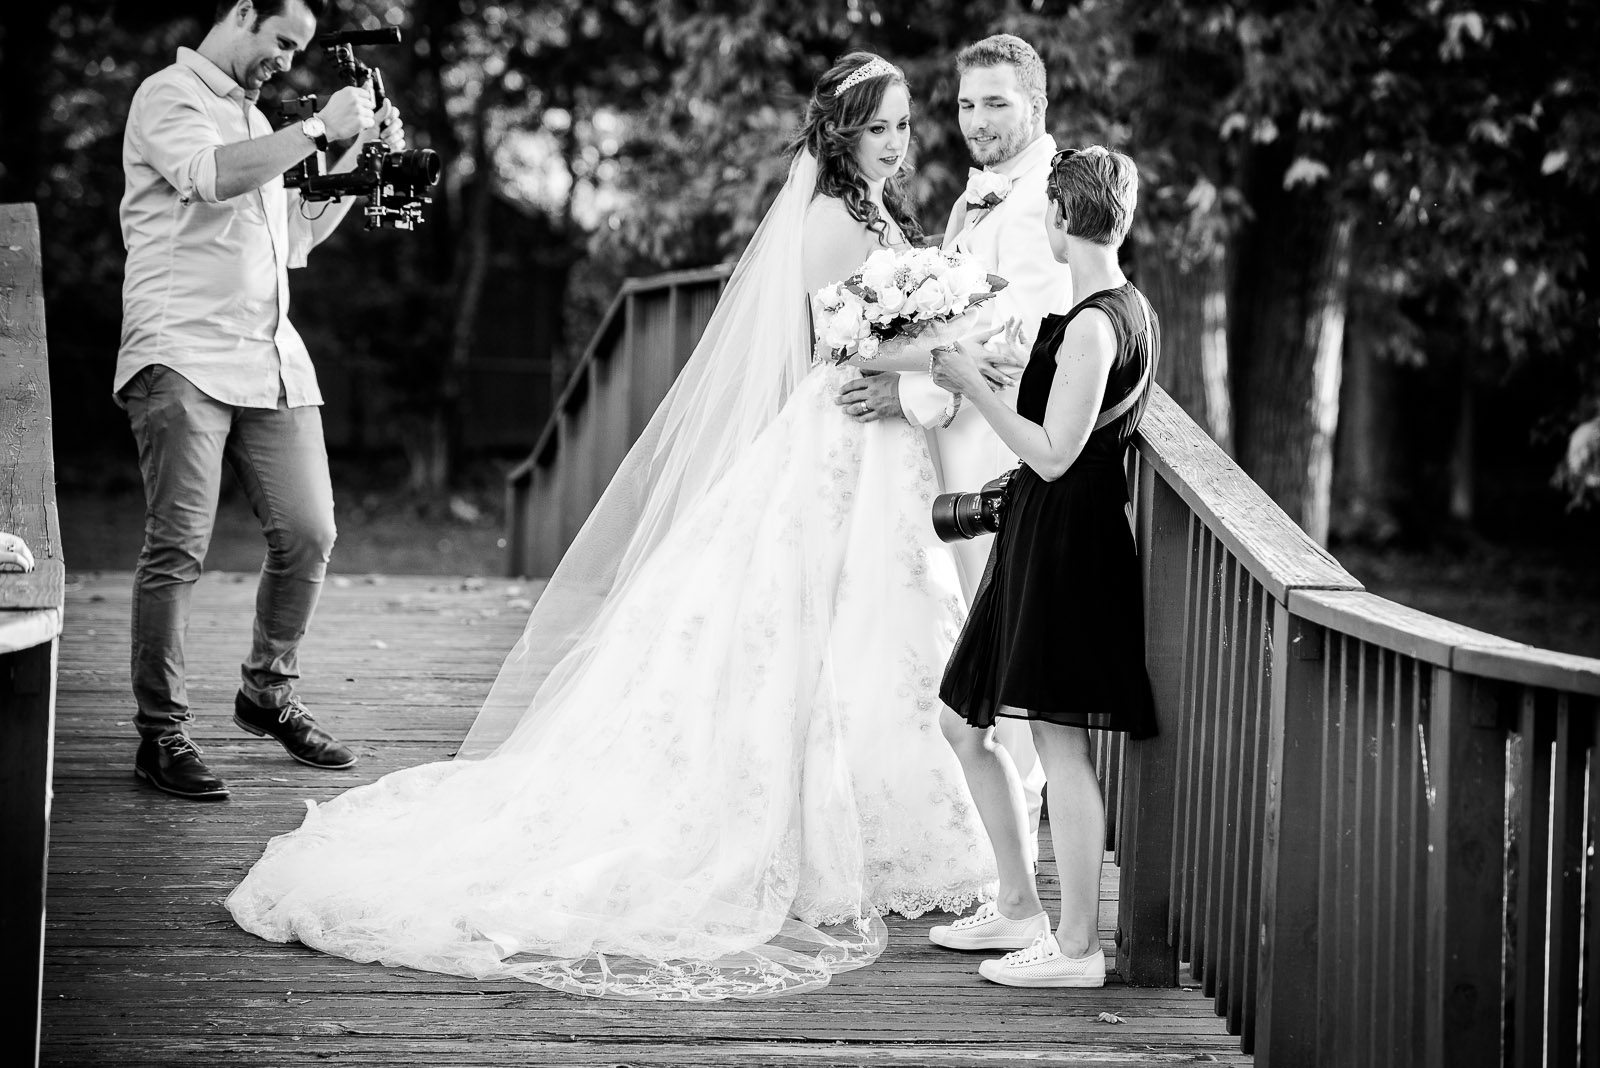 Eric_and_Christy_Photography_Blog_Wedding_Eva_Andrew-69